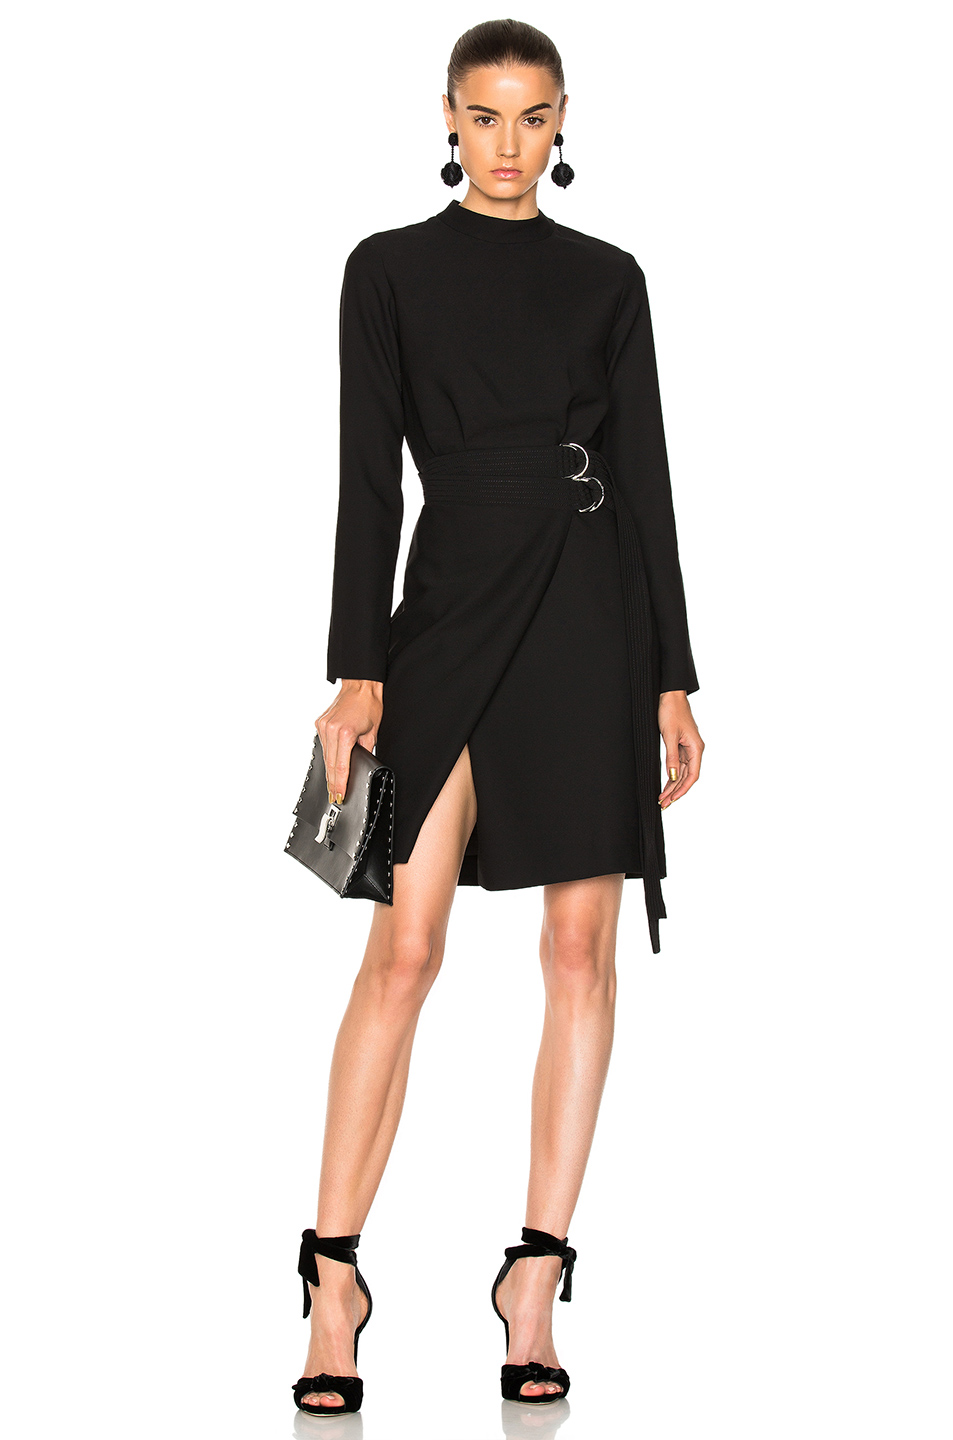 Carven Cut out Dress in Black